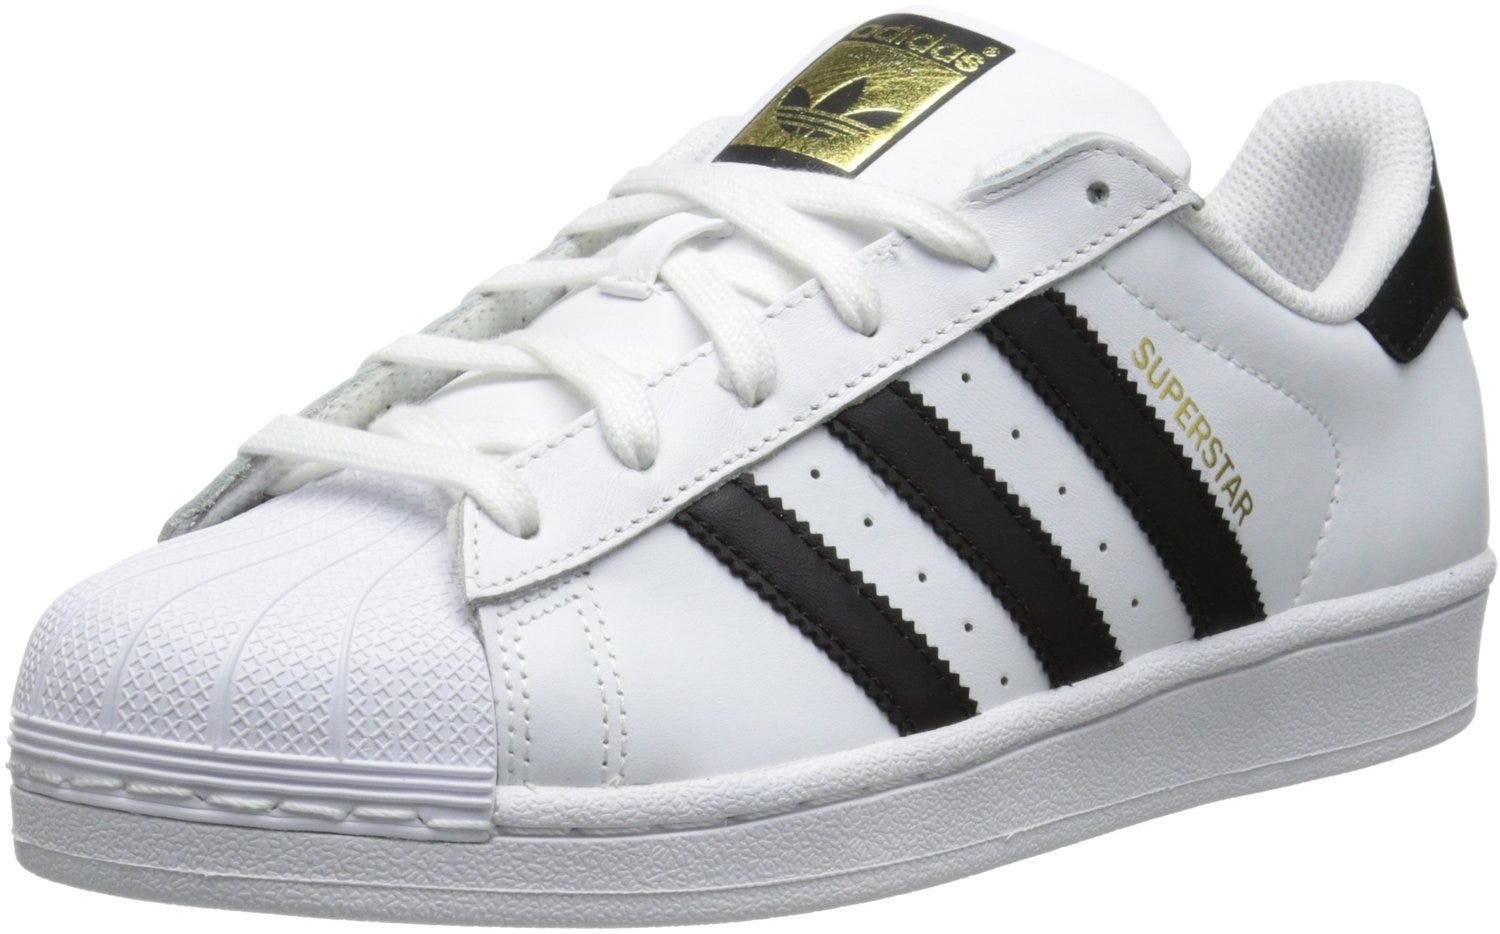 adidas superstar sneakers fashion girl shoes. Black Bedroom Furniture Sets. Home Design Ideas